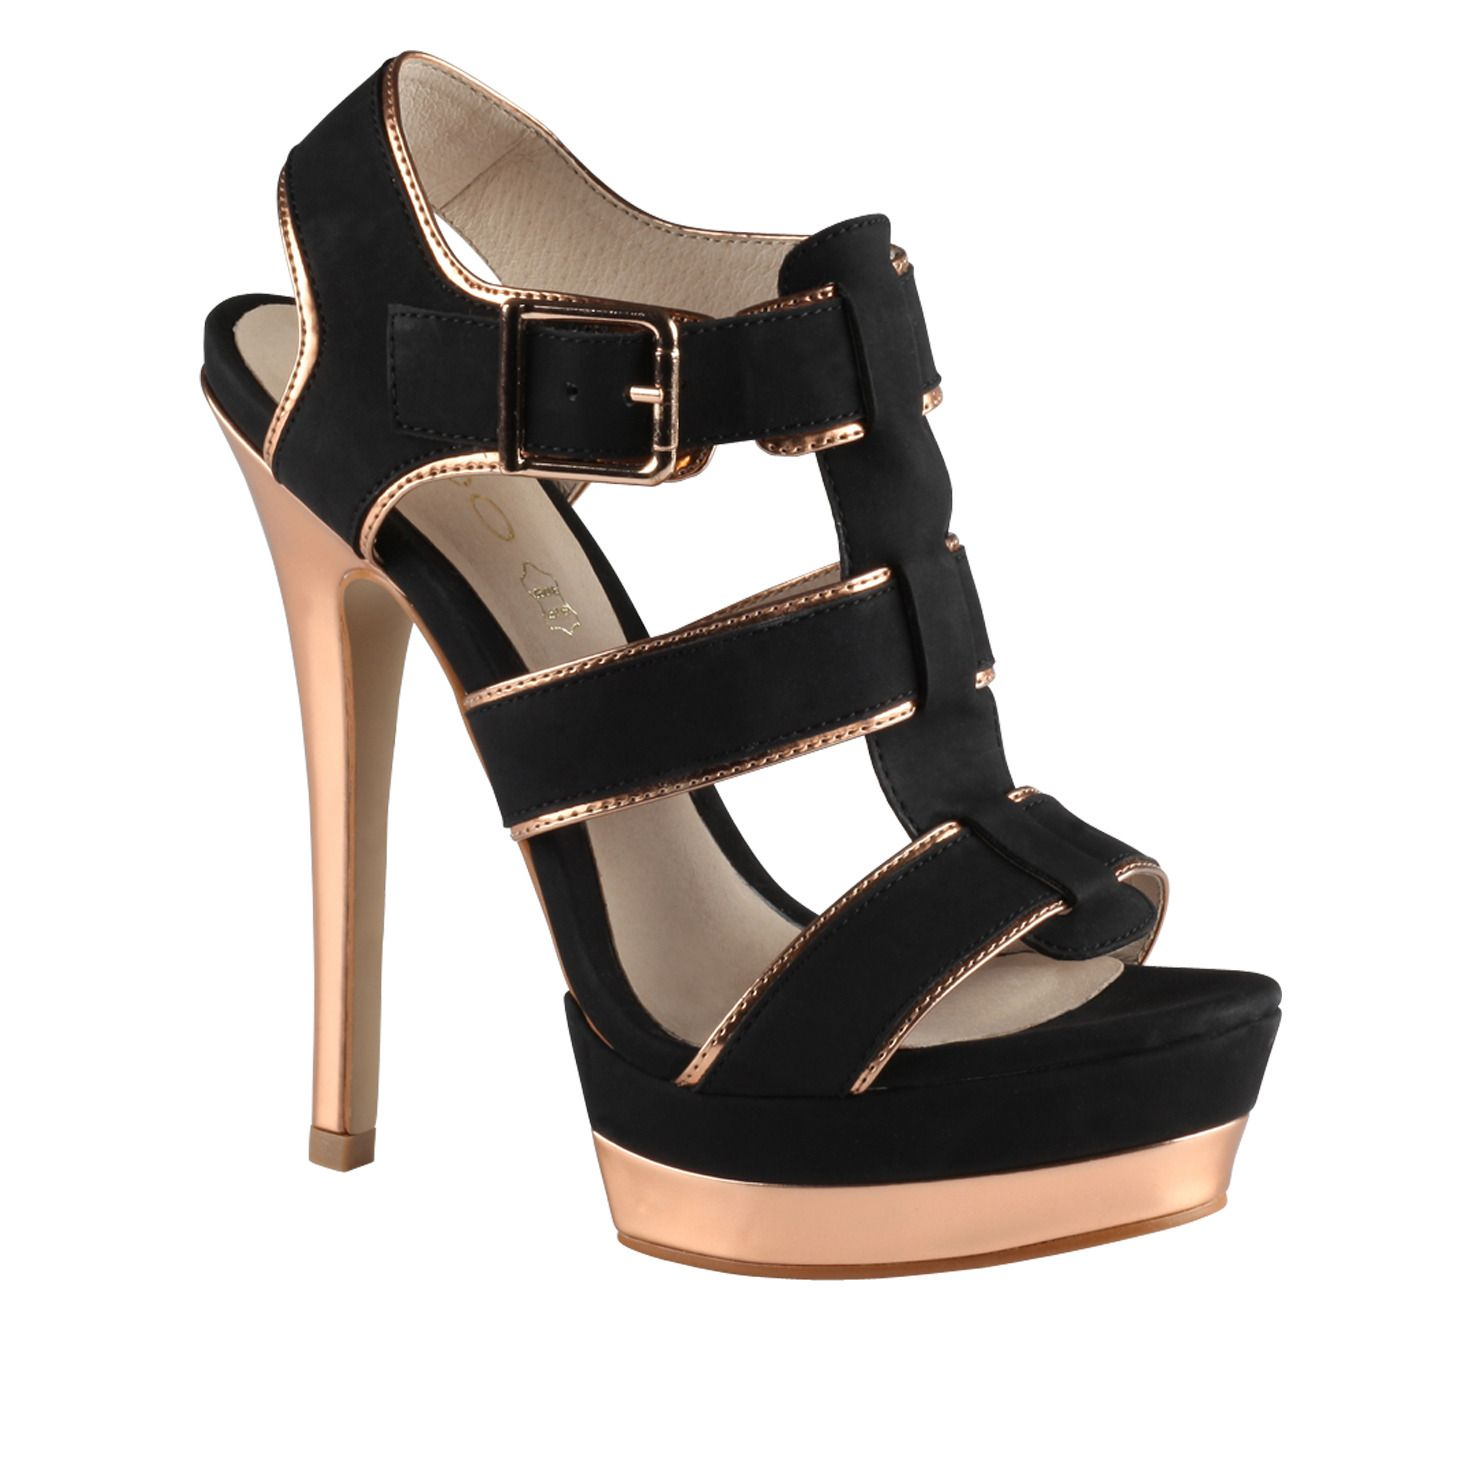 2f01053809ad DHARINEE - women s high heels sandals for sale at ALDO Shoes ...